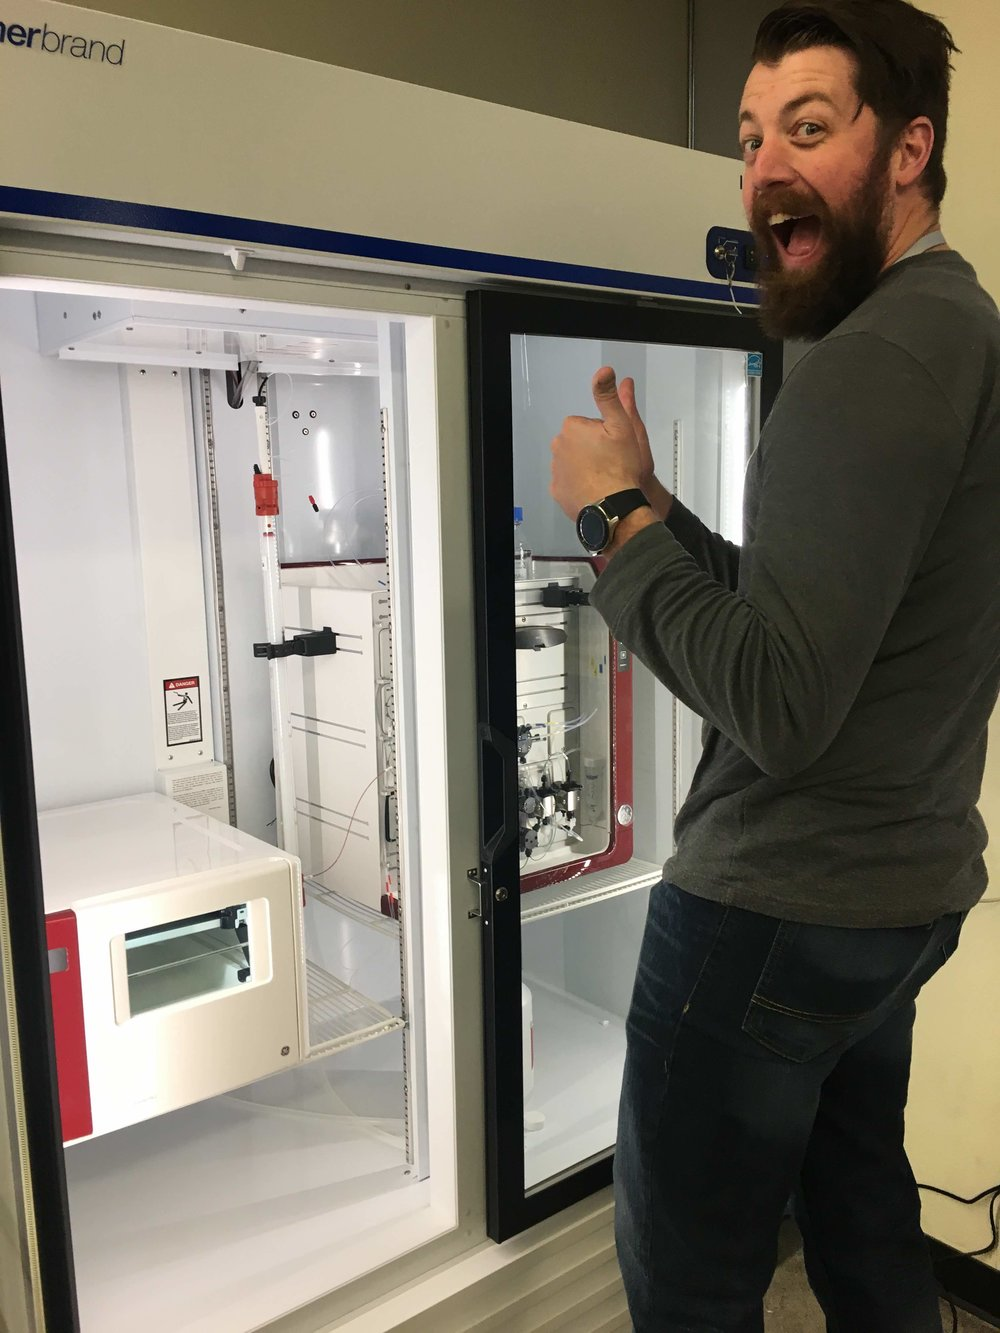 Luke is clearly excited about the new instrument!